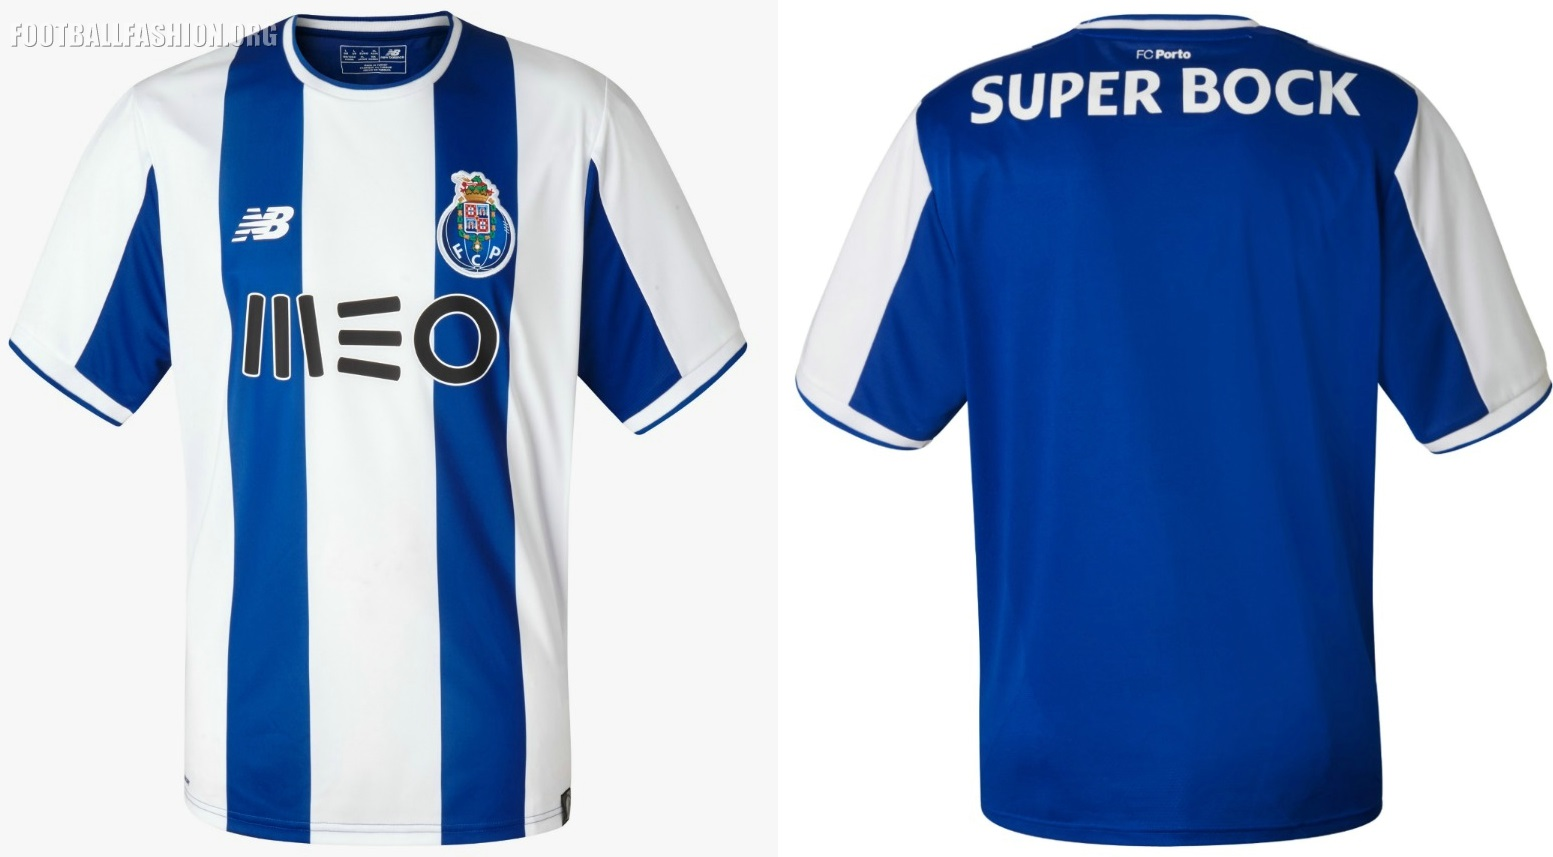 designer fashion cf411 7529e FC Porto 2017/18 New Balance Home Kit - FOOTBALL FASHION.ORG